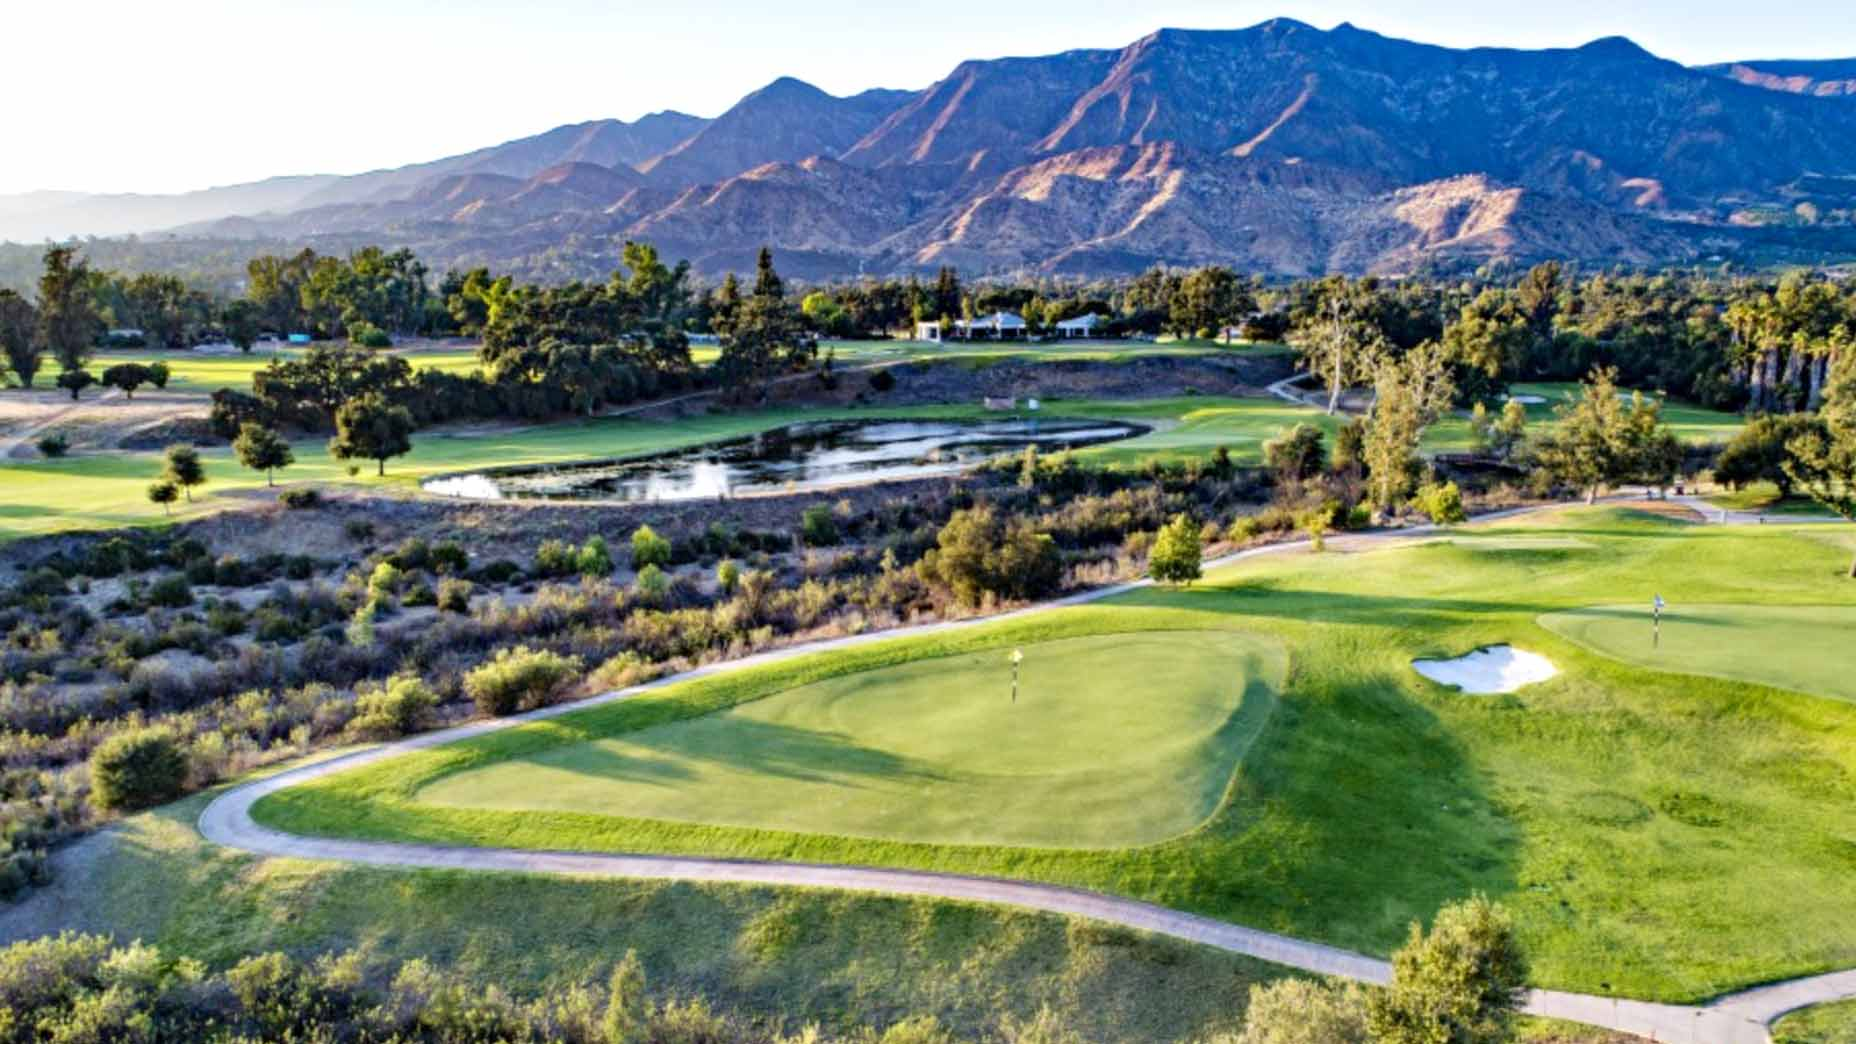 Soule Park Golf Course, in the Ojai Valley of California, is fun and affordable.